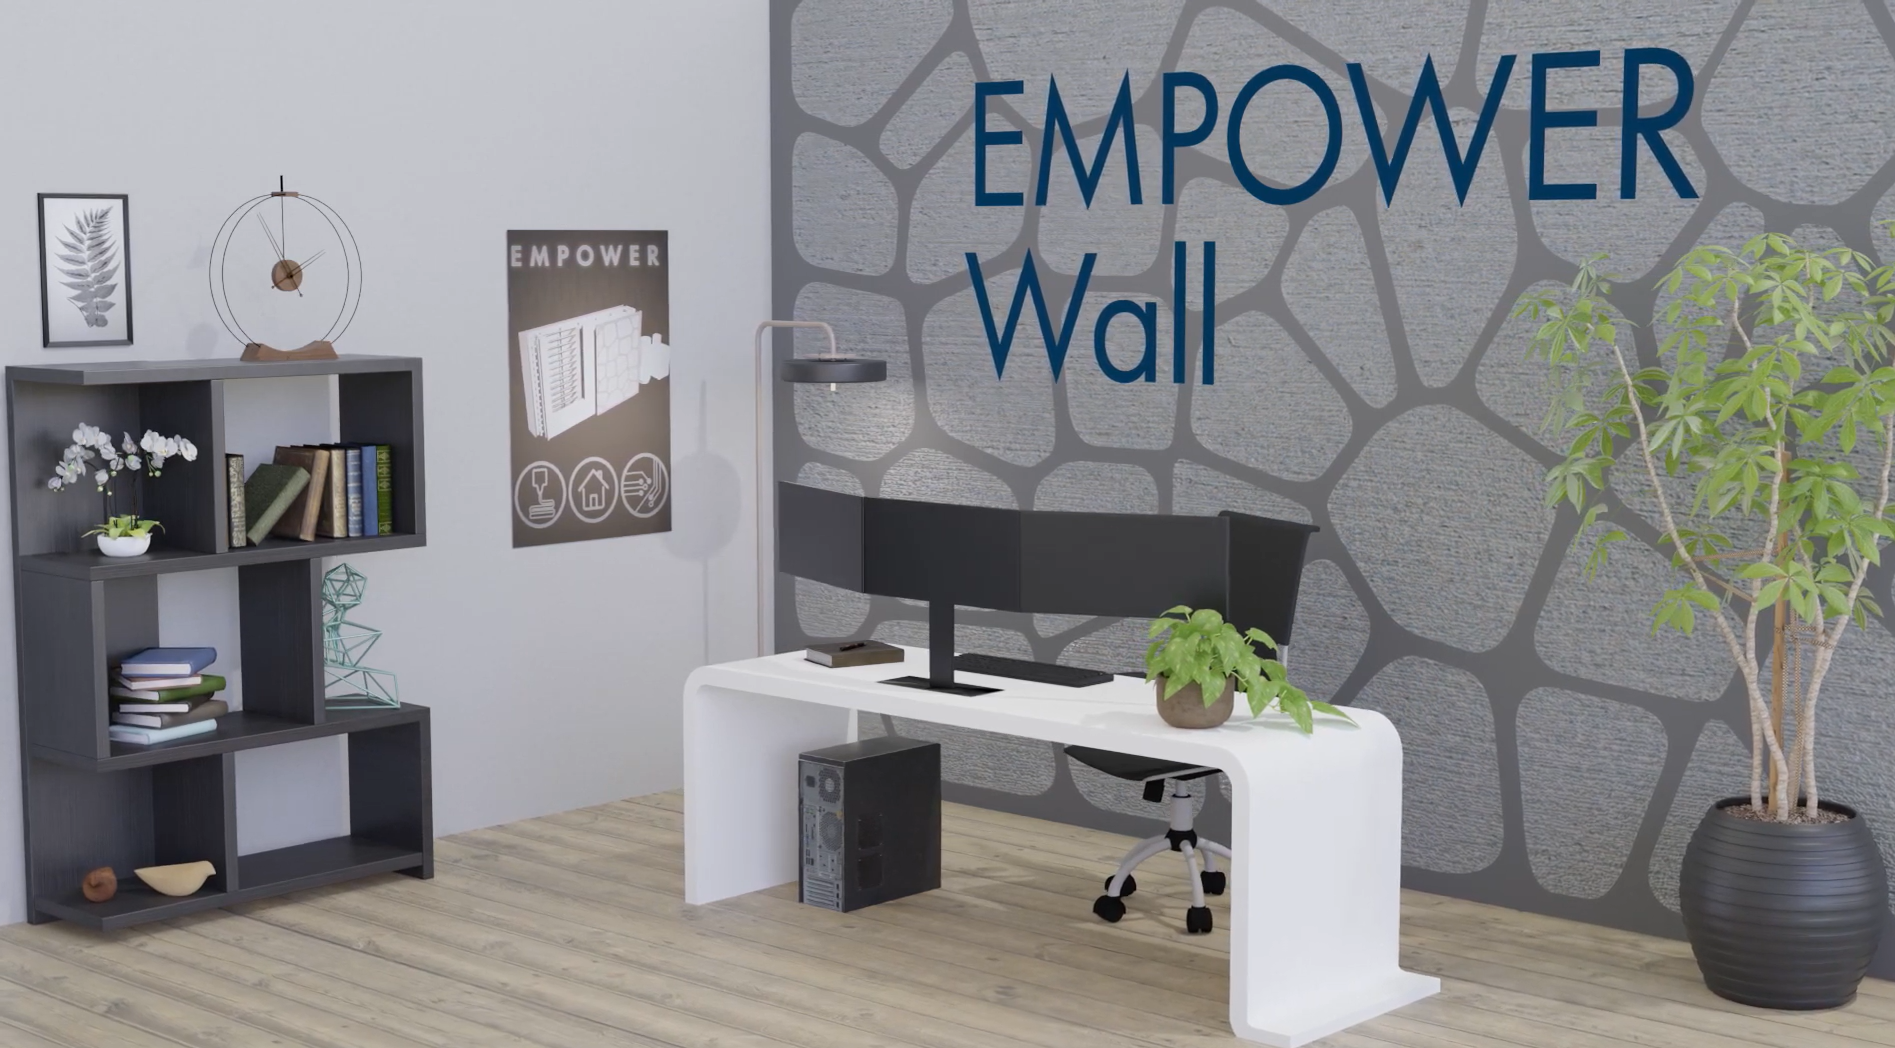 EMPOWER will be fitted into two office spaces sometime in 2021. Image via ORNL.